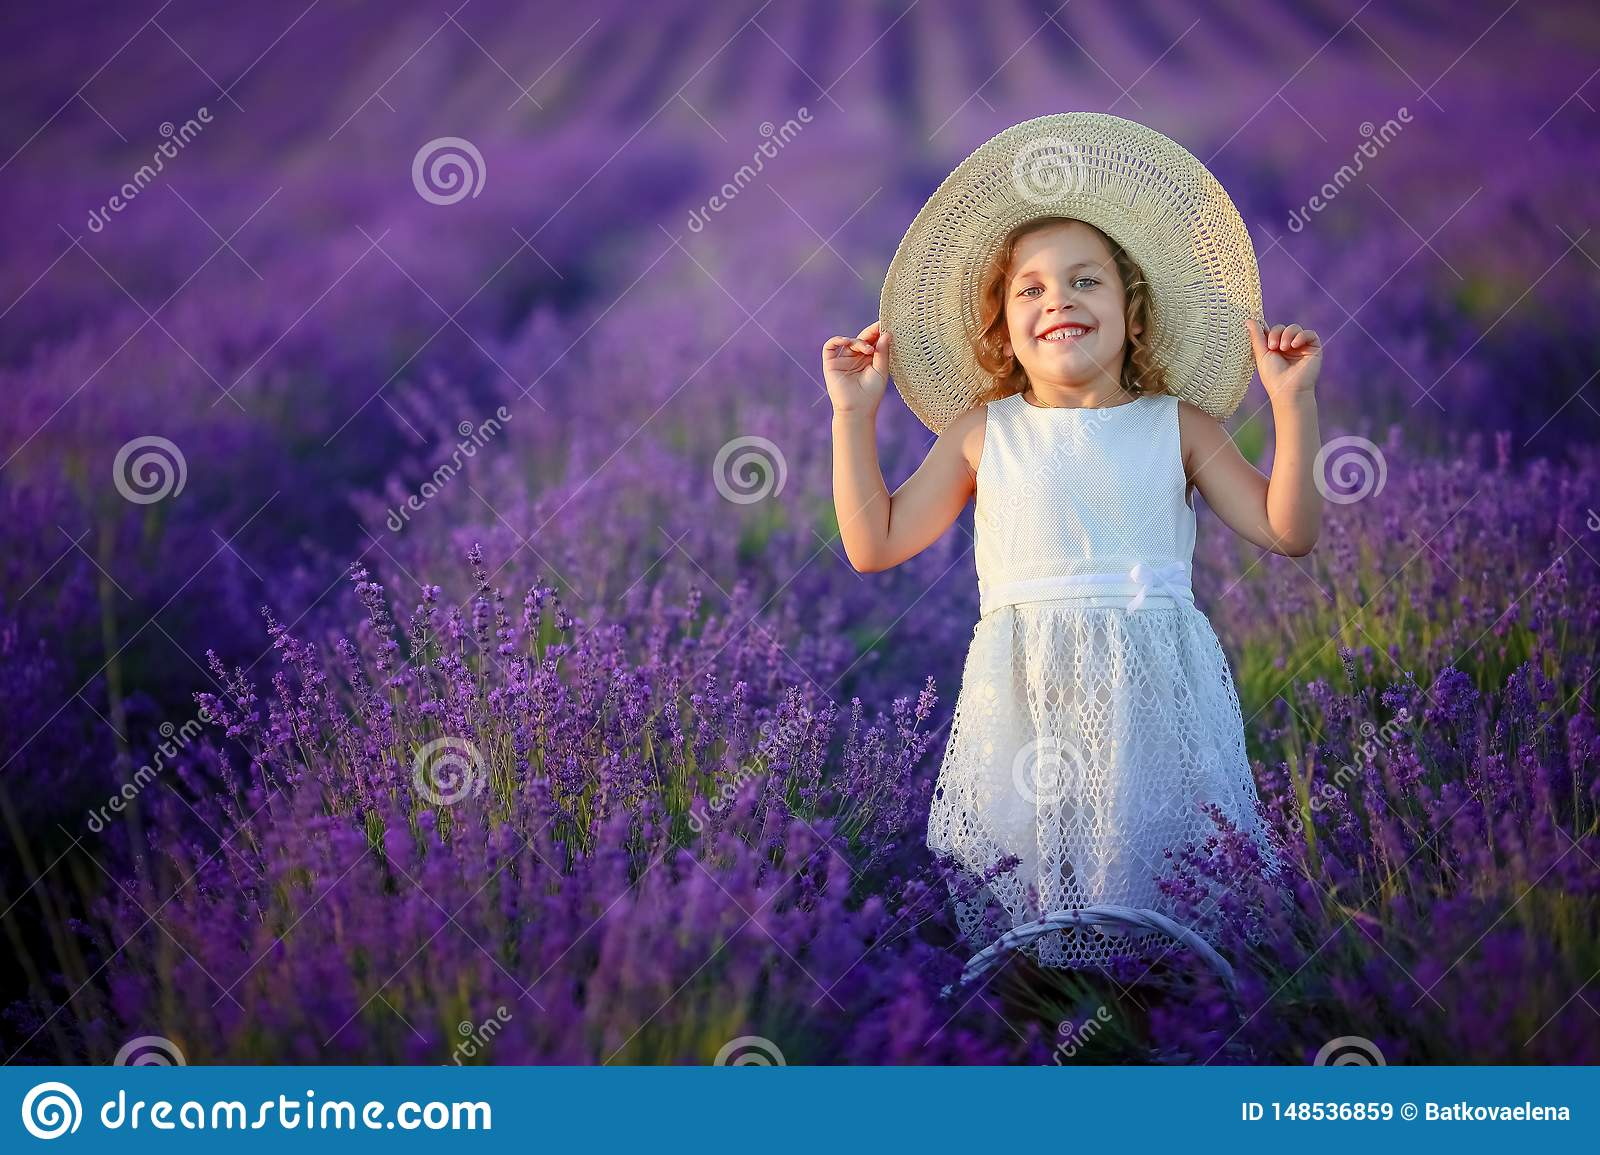 Curly girl standing on a lavender field in white dress and hat with cute face and nice hair with lavender bouquet and